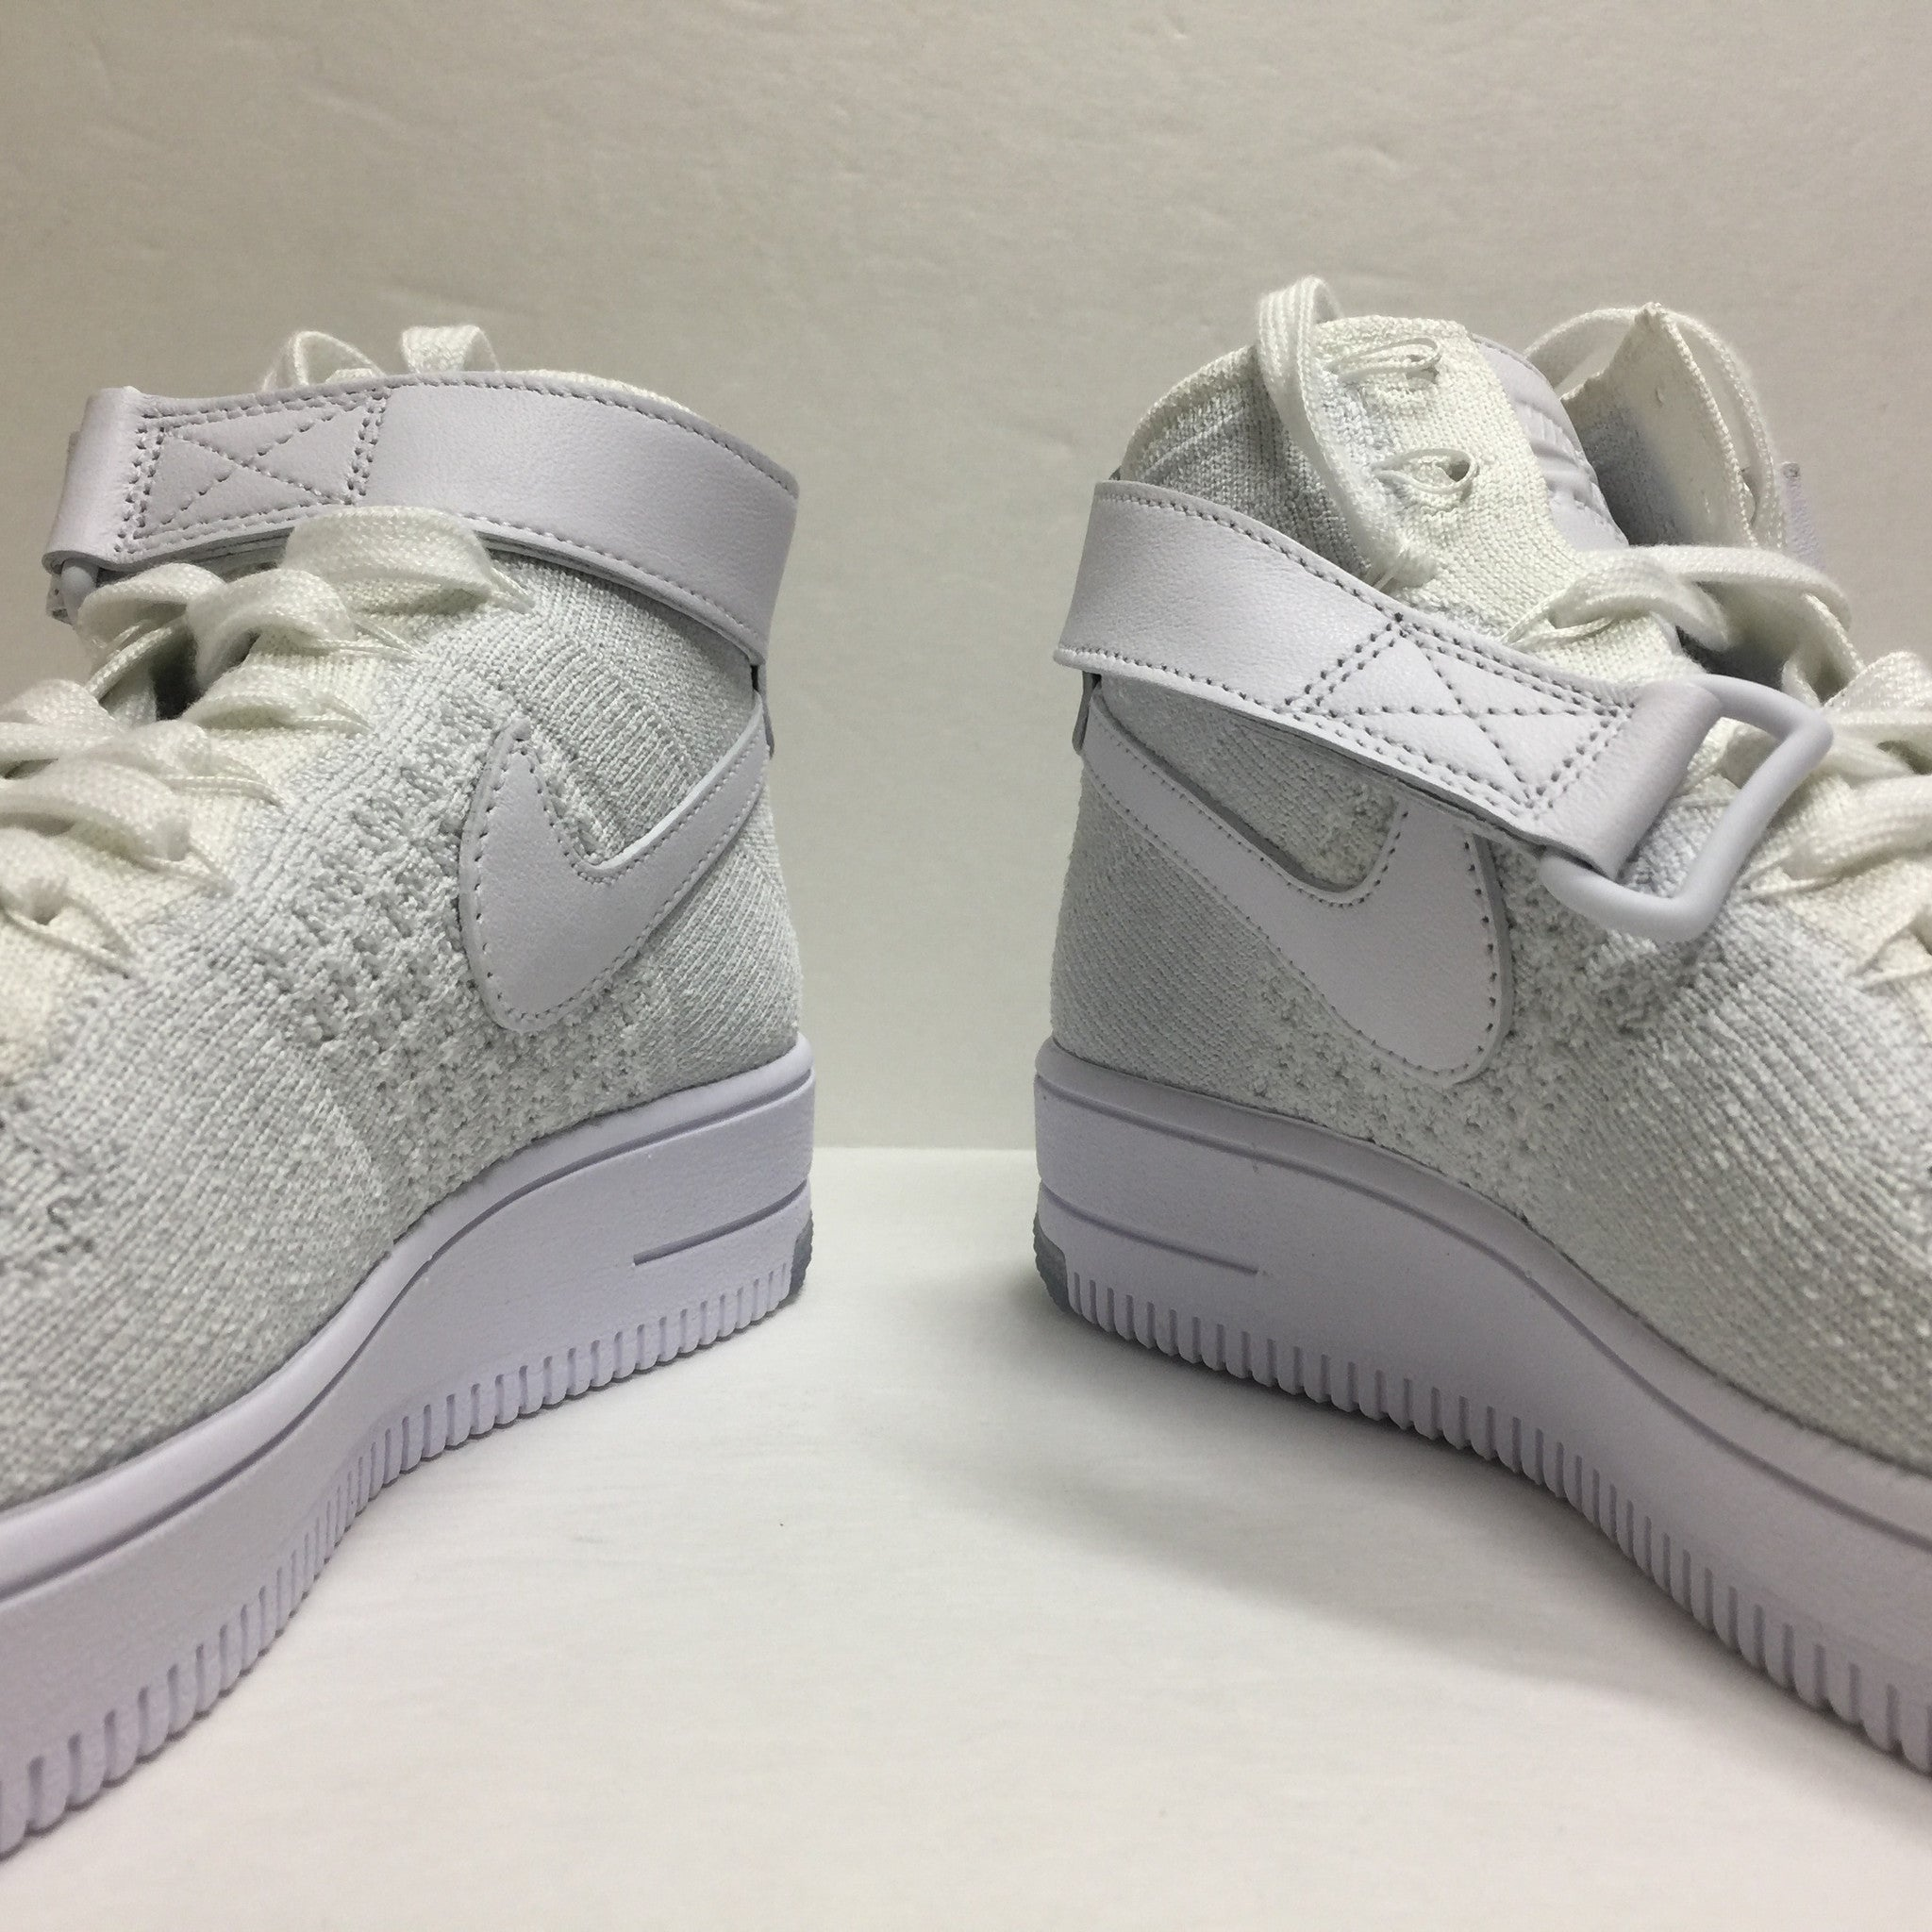 DS W Nike Air Force 1 Flyknit High White Size 6/6.5/Size 7.5 - DOPEFOOT  - 6